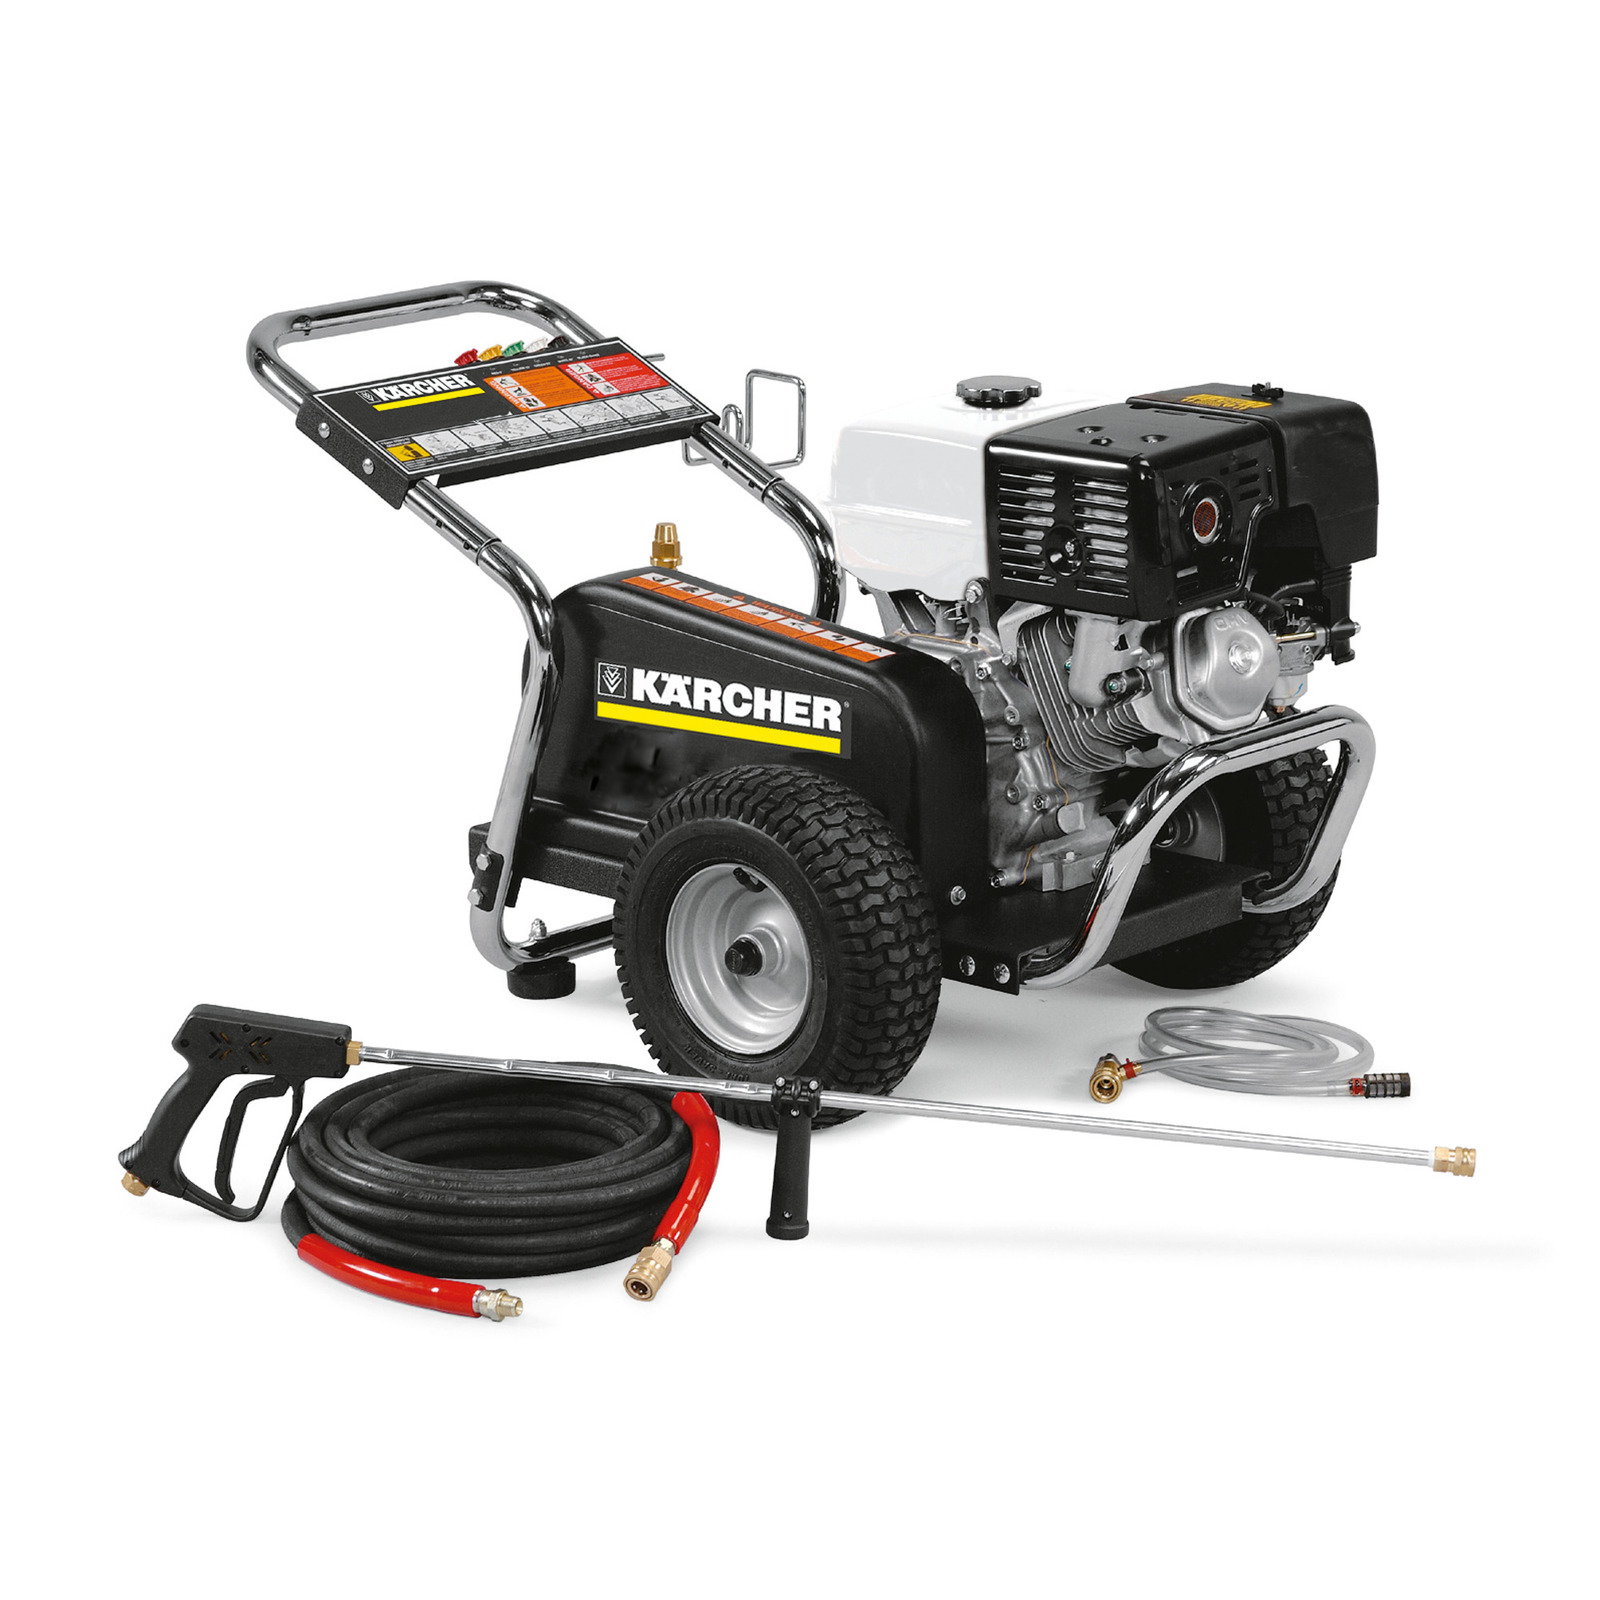 Karcher HD 3.7/35 PB 1.575-154.0 Honda Shark Cold Water Gas Pressure Washer 3.7GPM 3500PSI 13HP 1.107-145.0 BG-373537